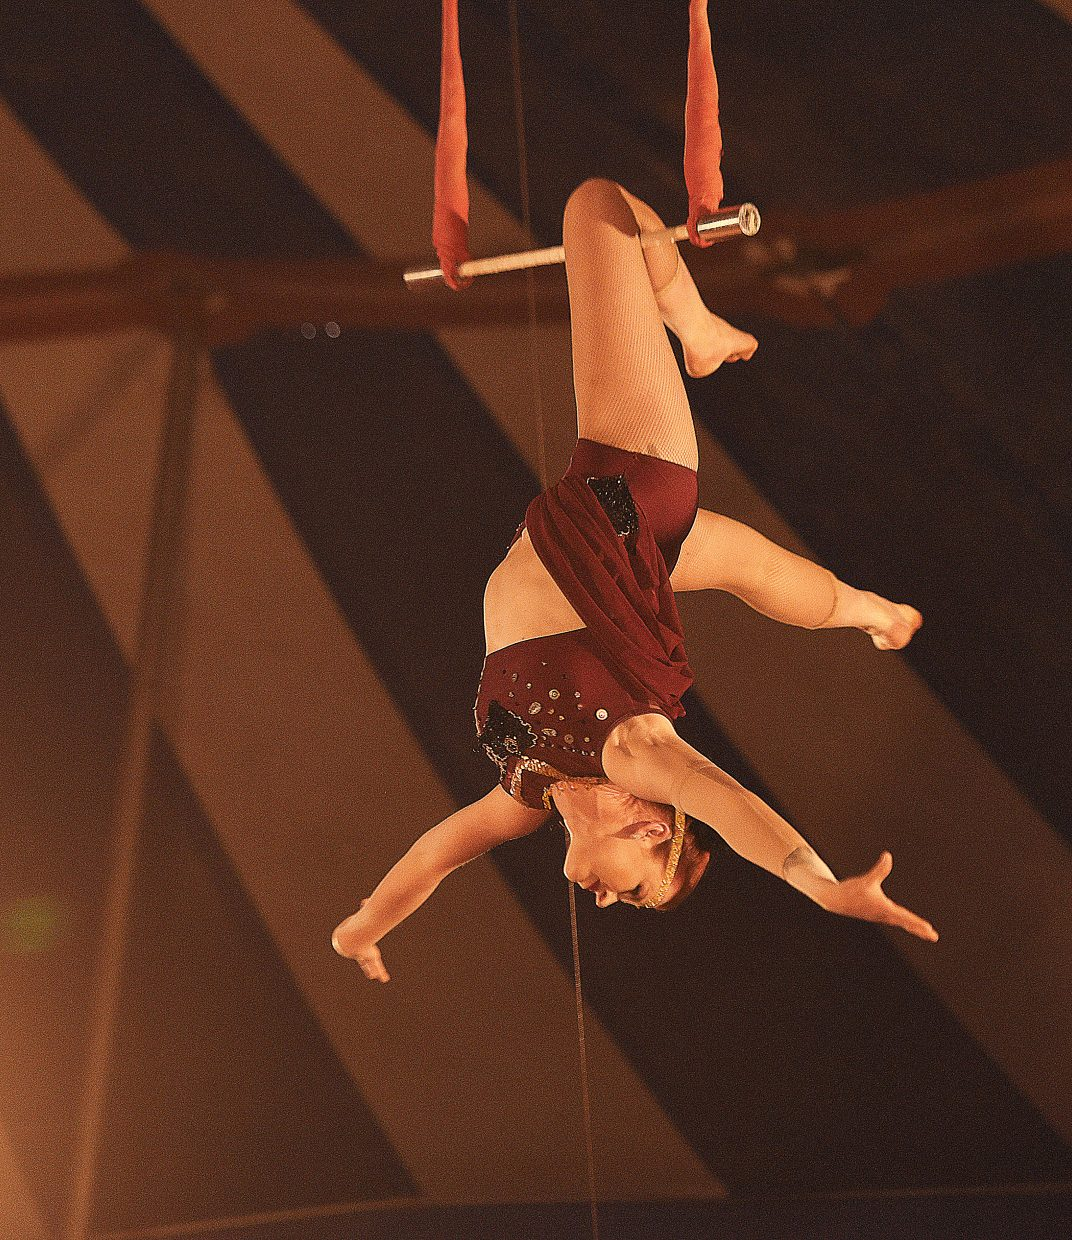 Performer Simone Key entertains the crows on the trapeze during a performance at the Culpepper & Merriweather Circus Tuesday afternoon at the Brent Romick Rodeo Arena. The circus stopped in Steamboat Springs for performances Monday and Tuesday.